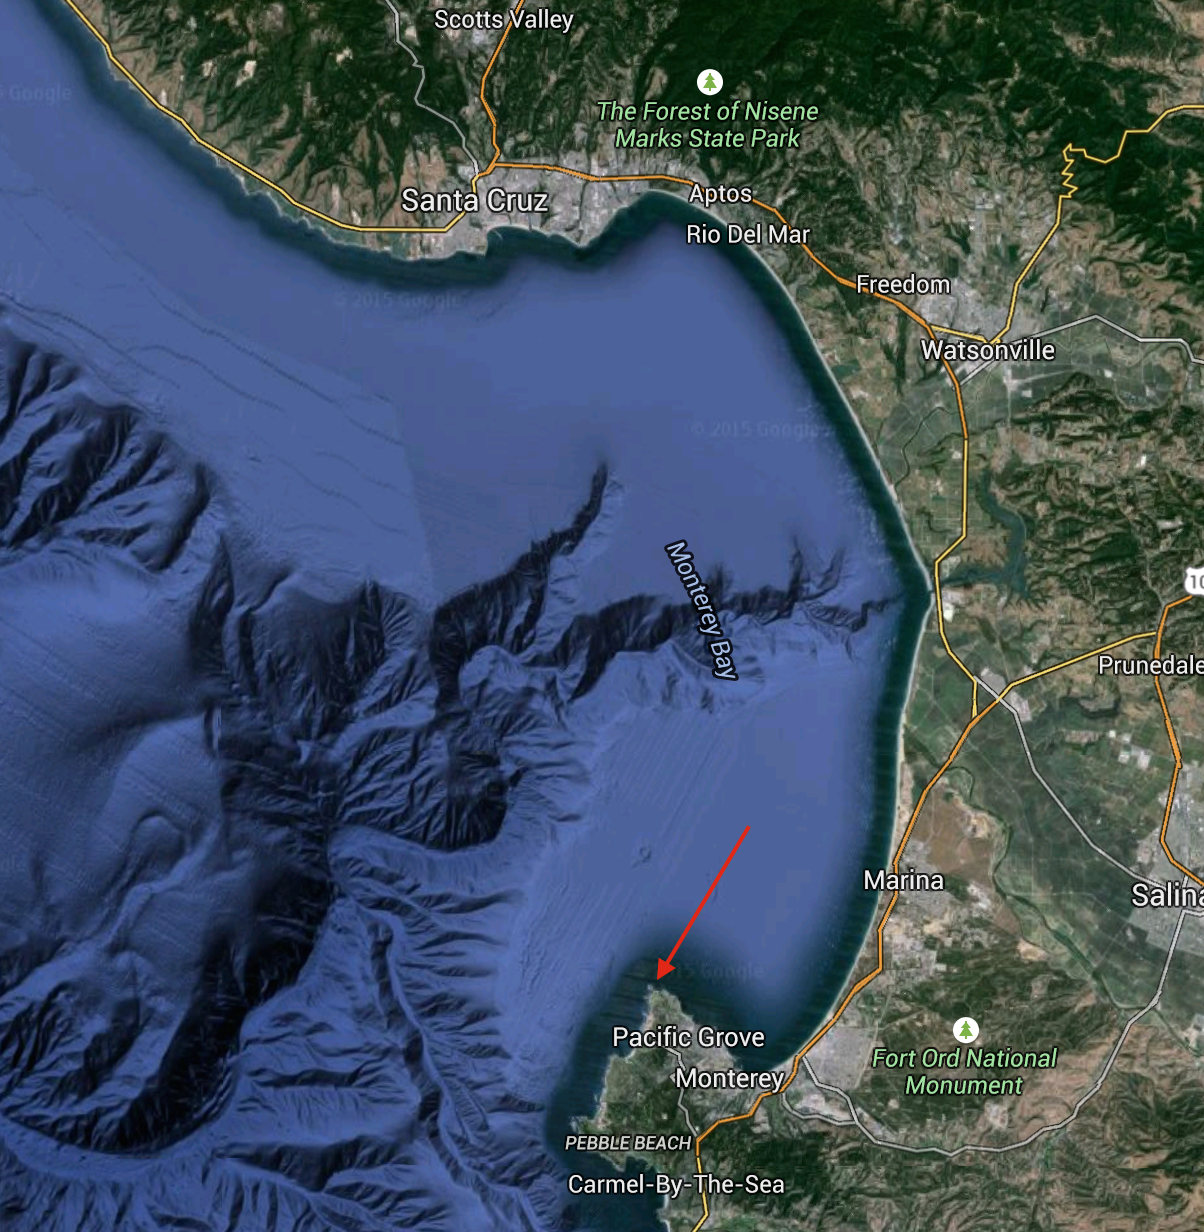 Map of Monterey Bay. Red arrow indicates Point Pinos.